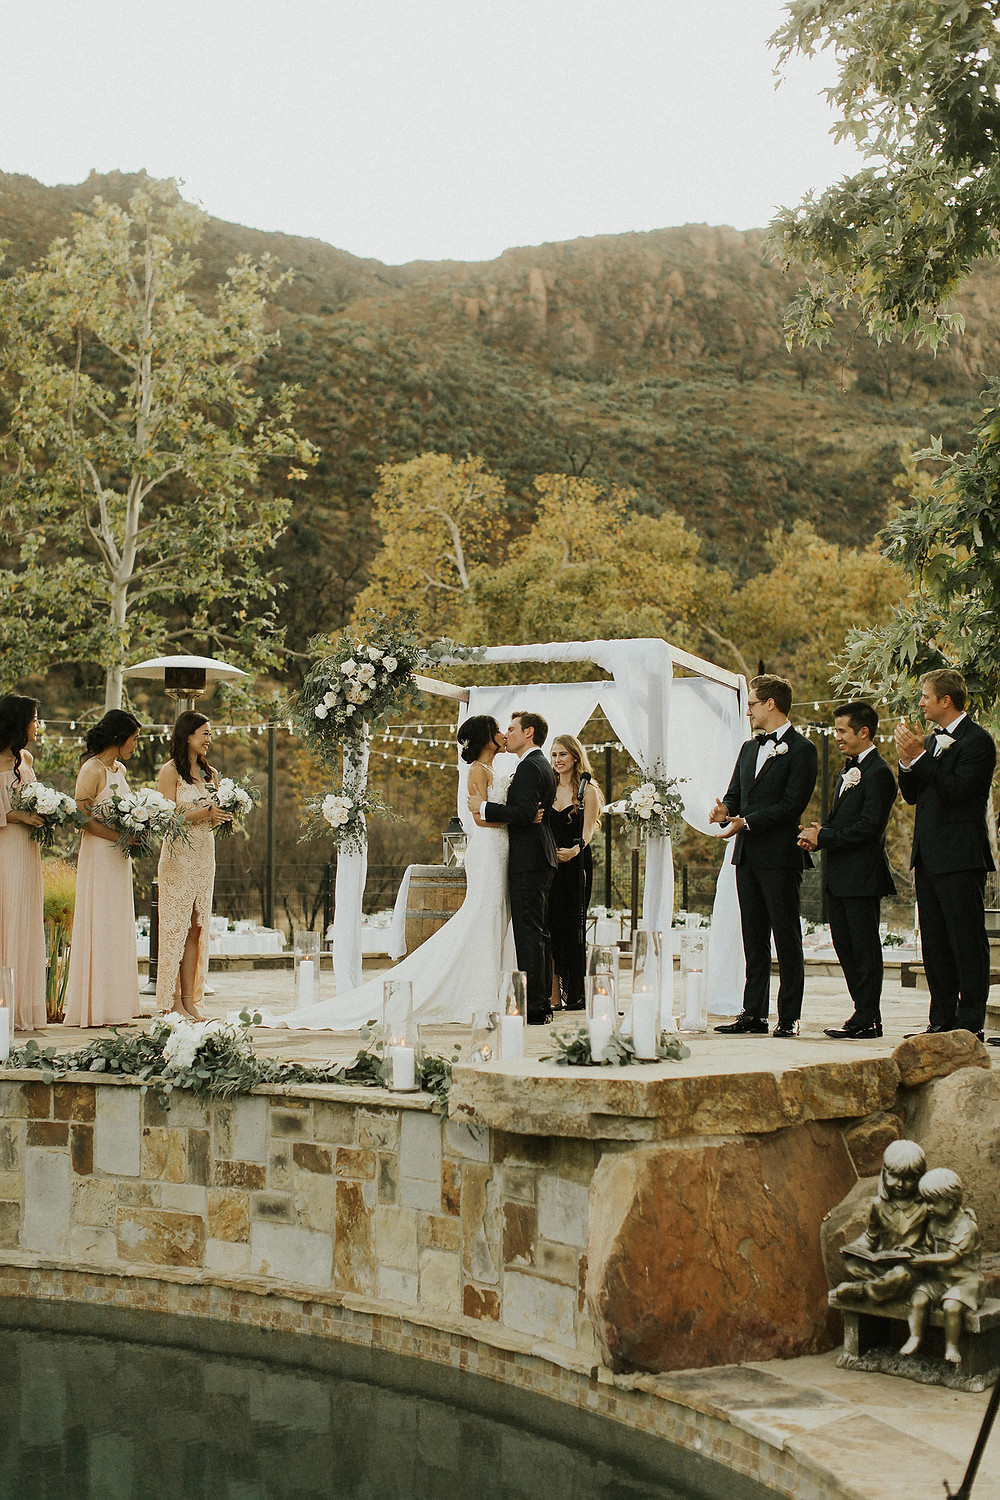 Couple kiss after saying I Do in a Backyard wedding designed around the pool